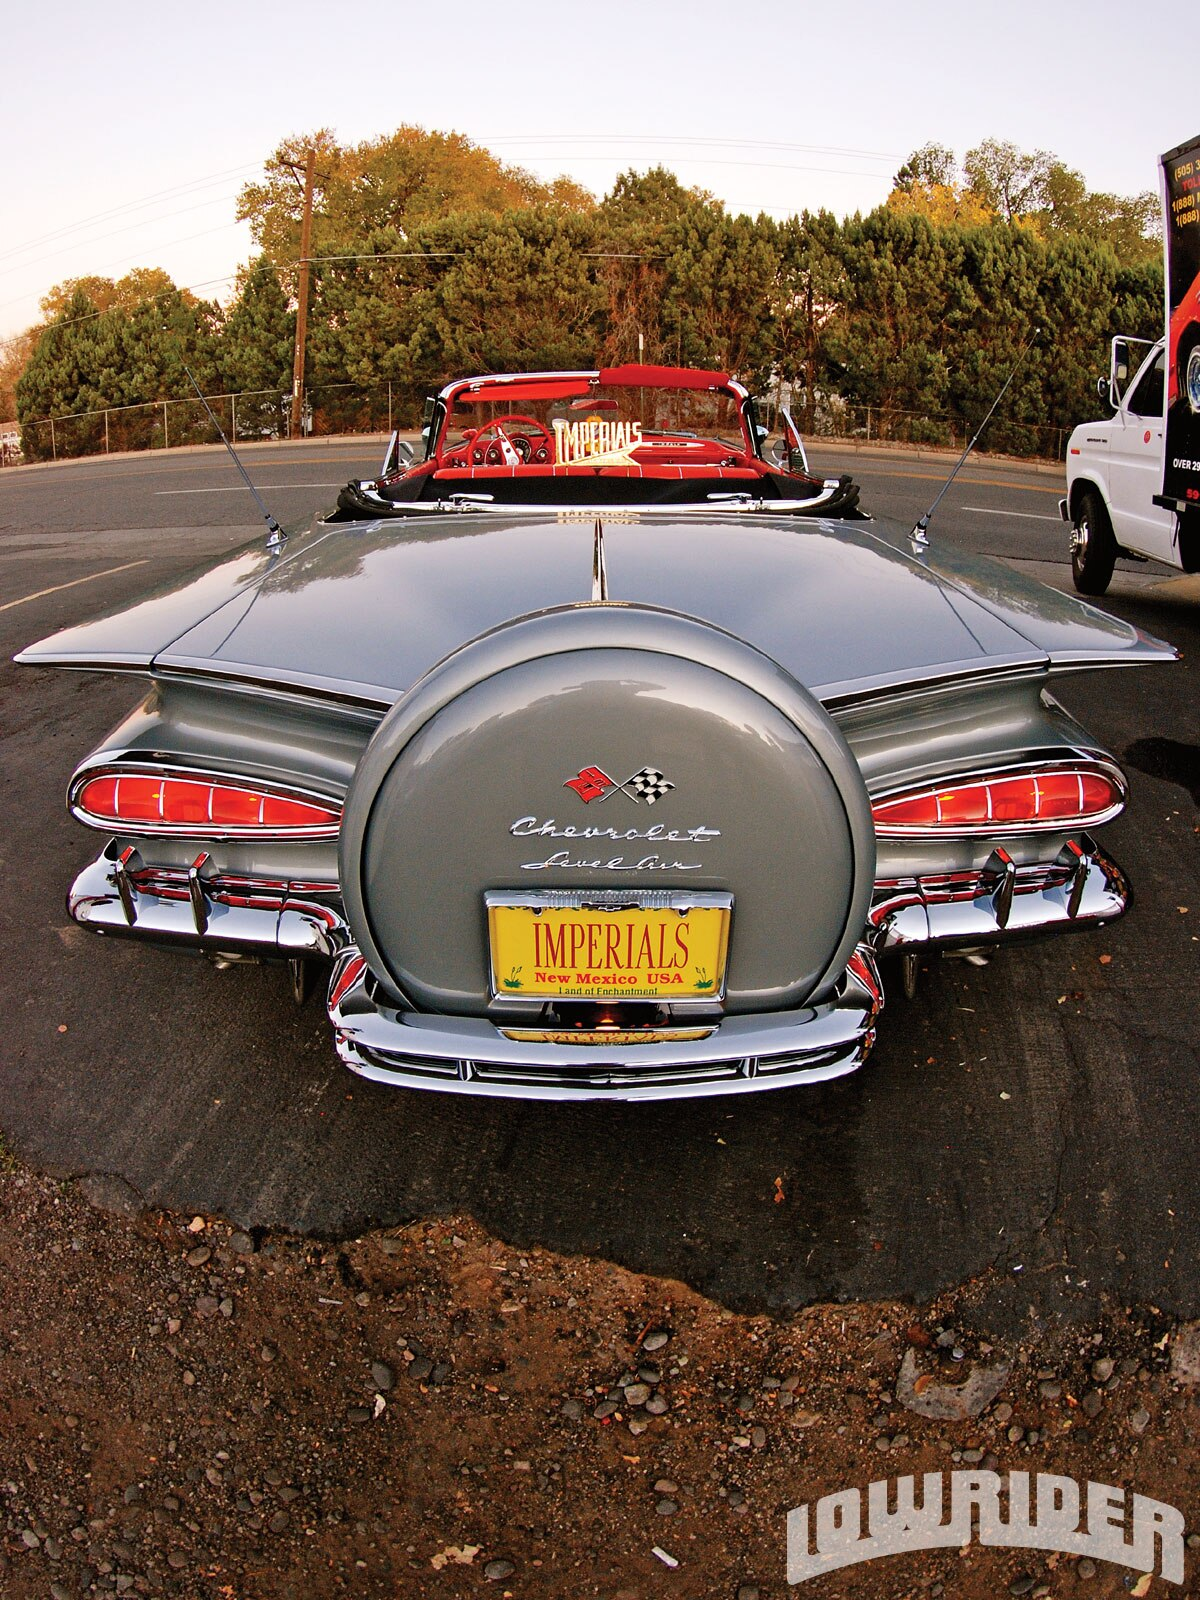 1009-lrmp-02-z-1959-chevrolet-impala-rear-view1